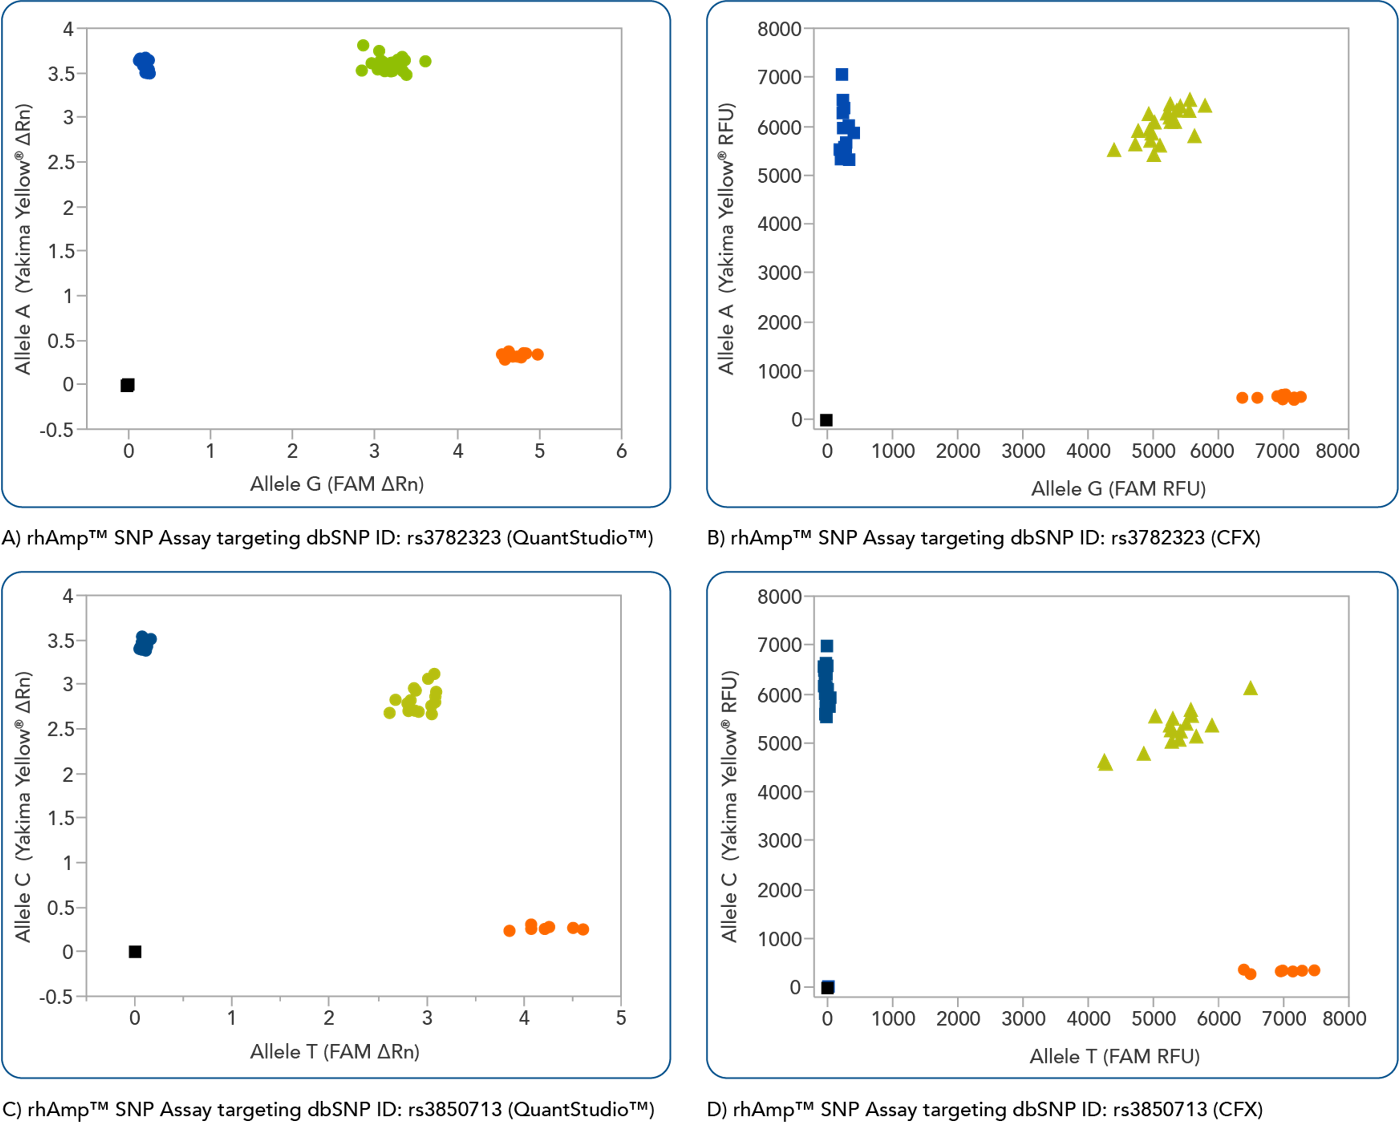 rhAmp-adme-snp-assays-35-and-36_instrument-comparison